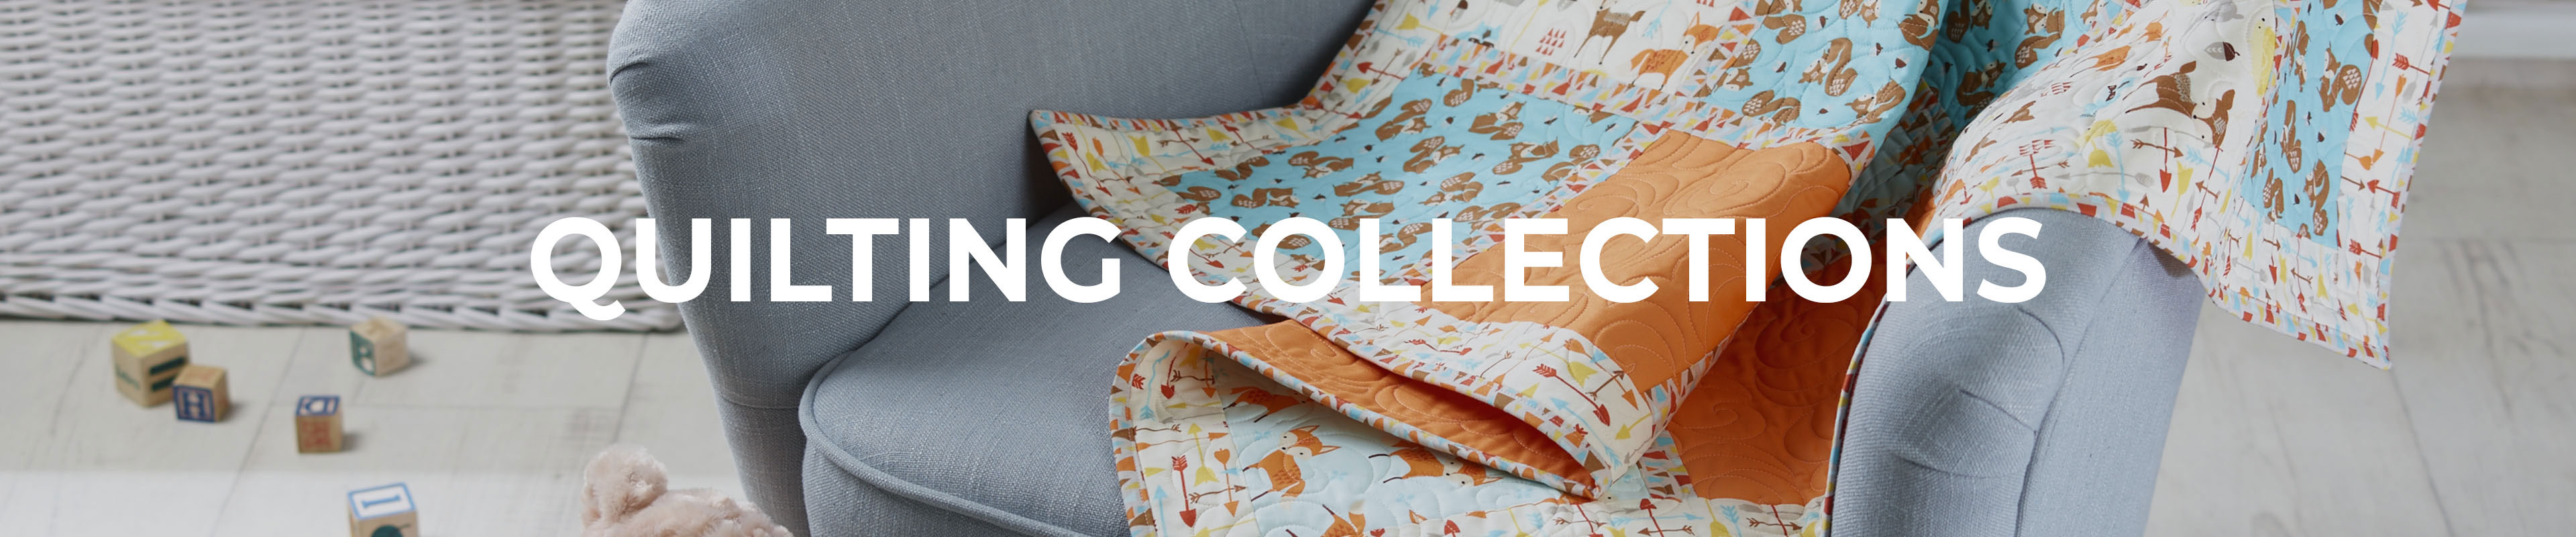 Shop Our Quilting Collections